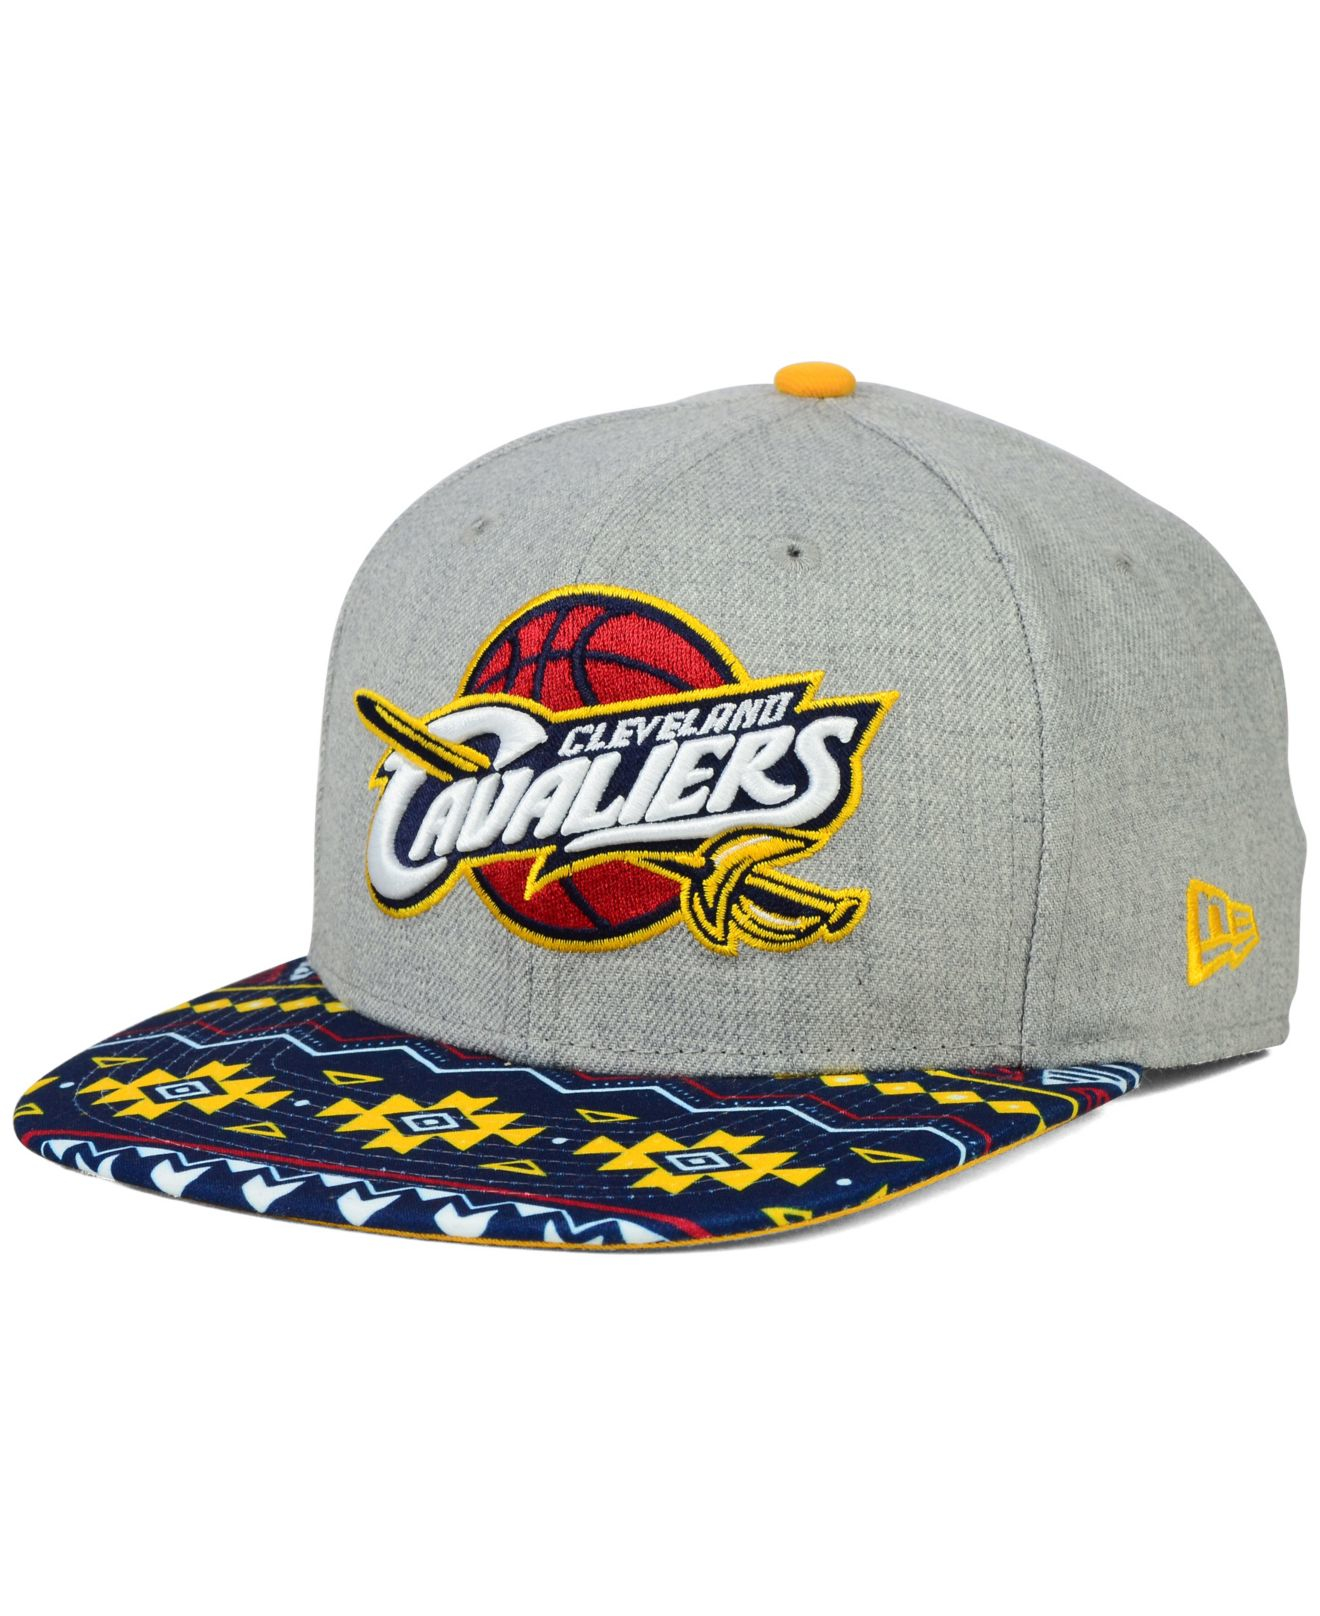 7524edc98aa Lyst - Ktz Cleveland Cavaliers Neon Mashup 9fifty Snapback Cap in ...